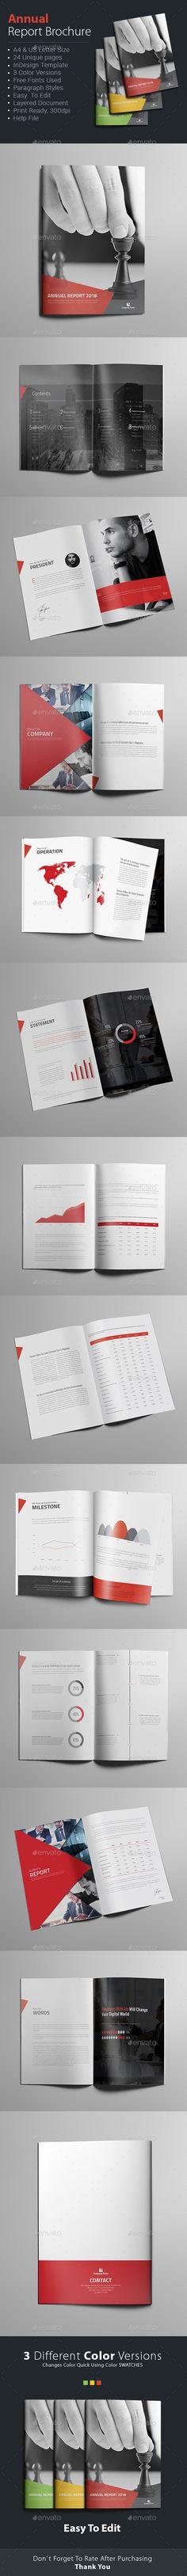 Annual Report Template INDD Annual Report Templates Pinterest - professional report template